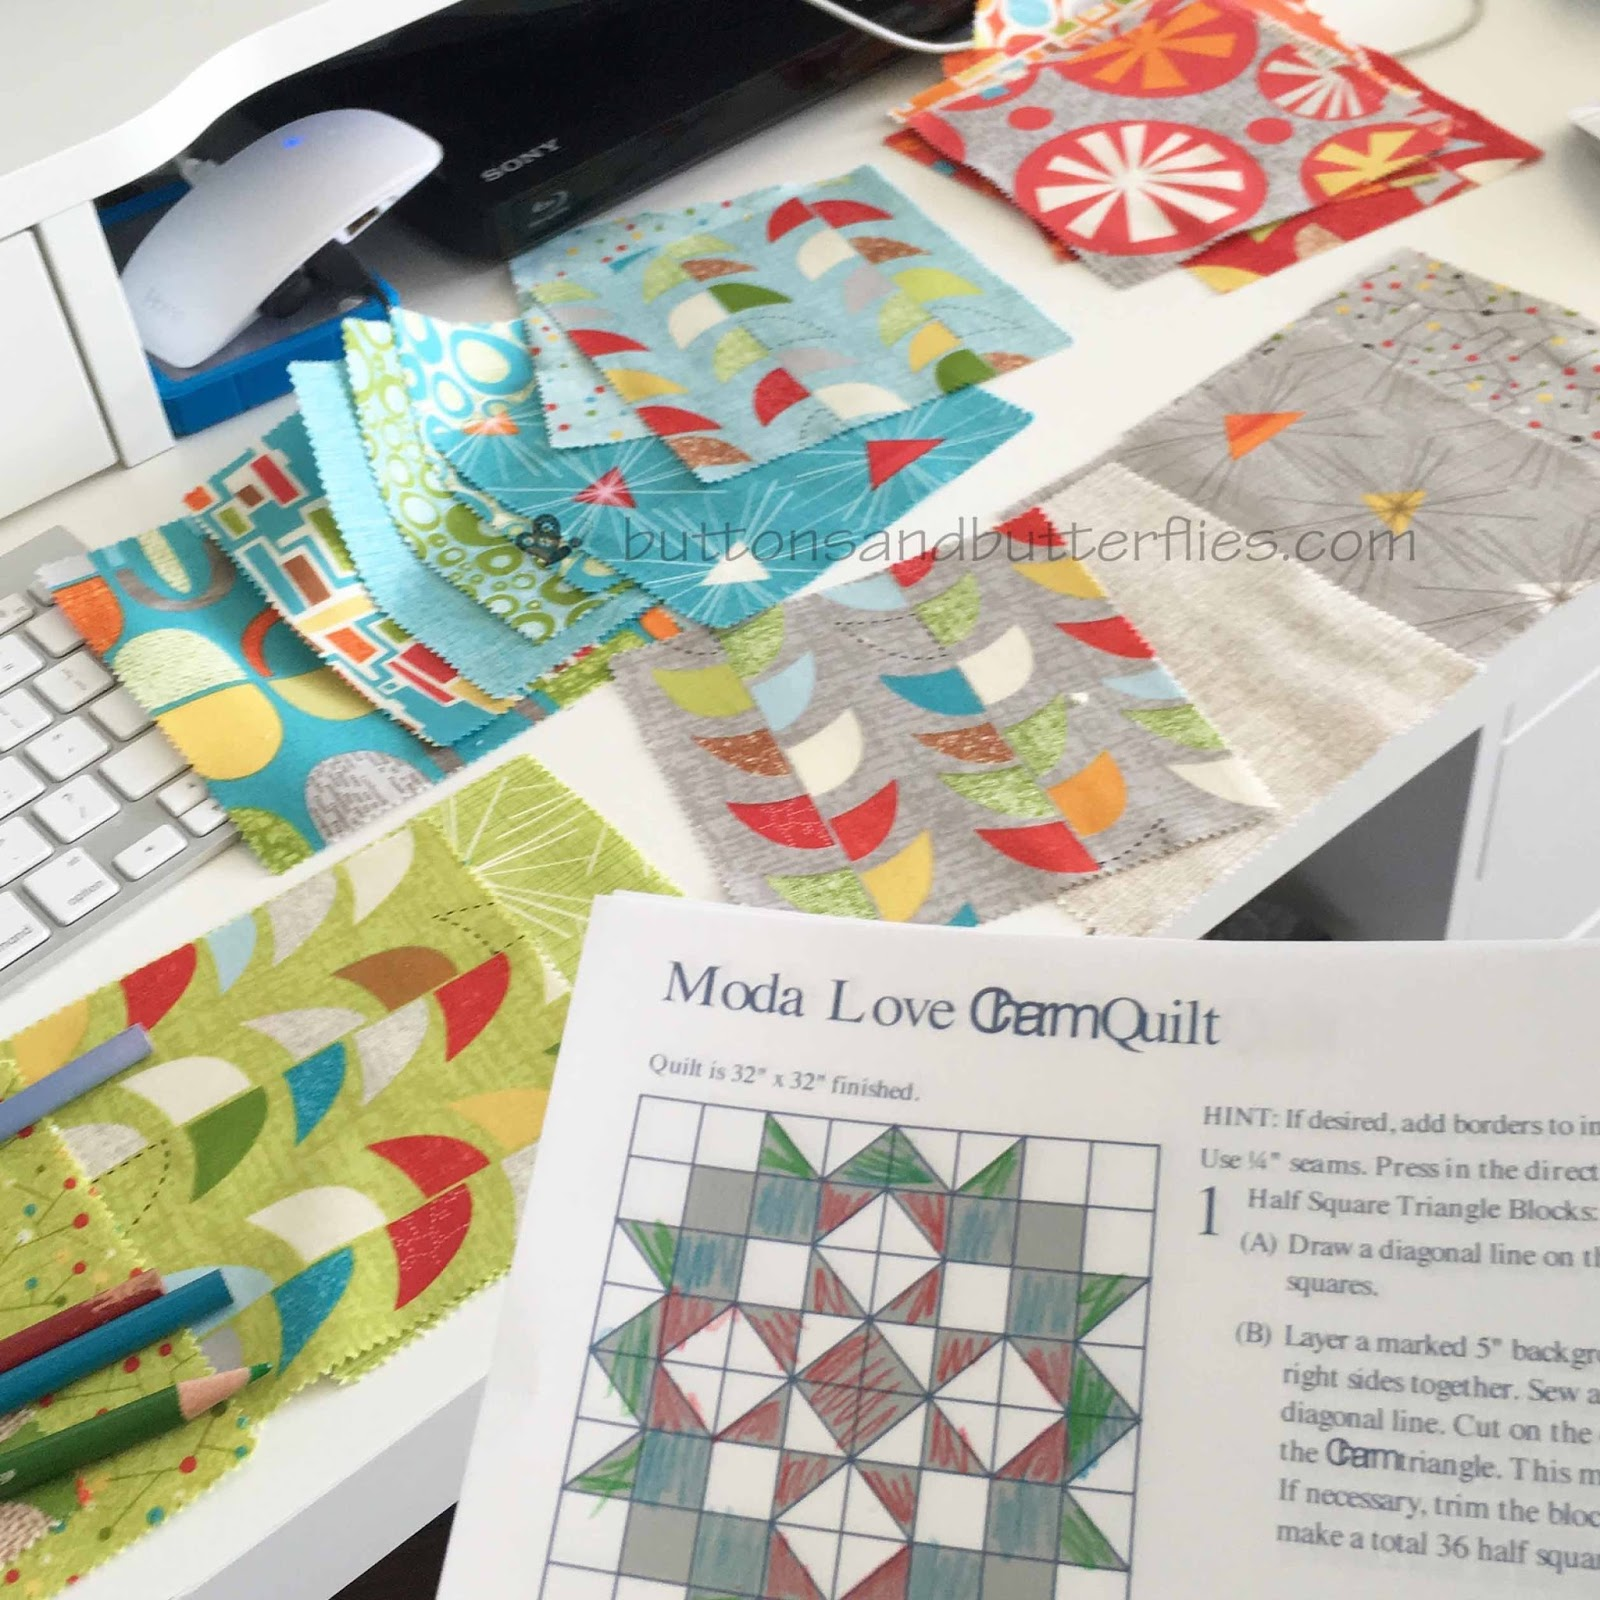 charm way your turn more small ve because and pack quilt quilts list can for of projects a got them pin we home into patterns charming grab you